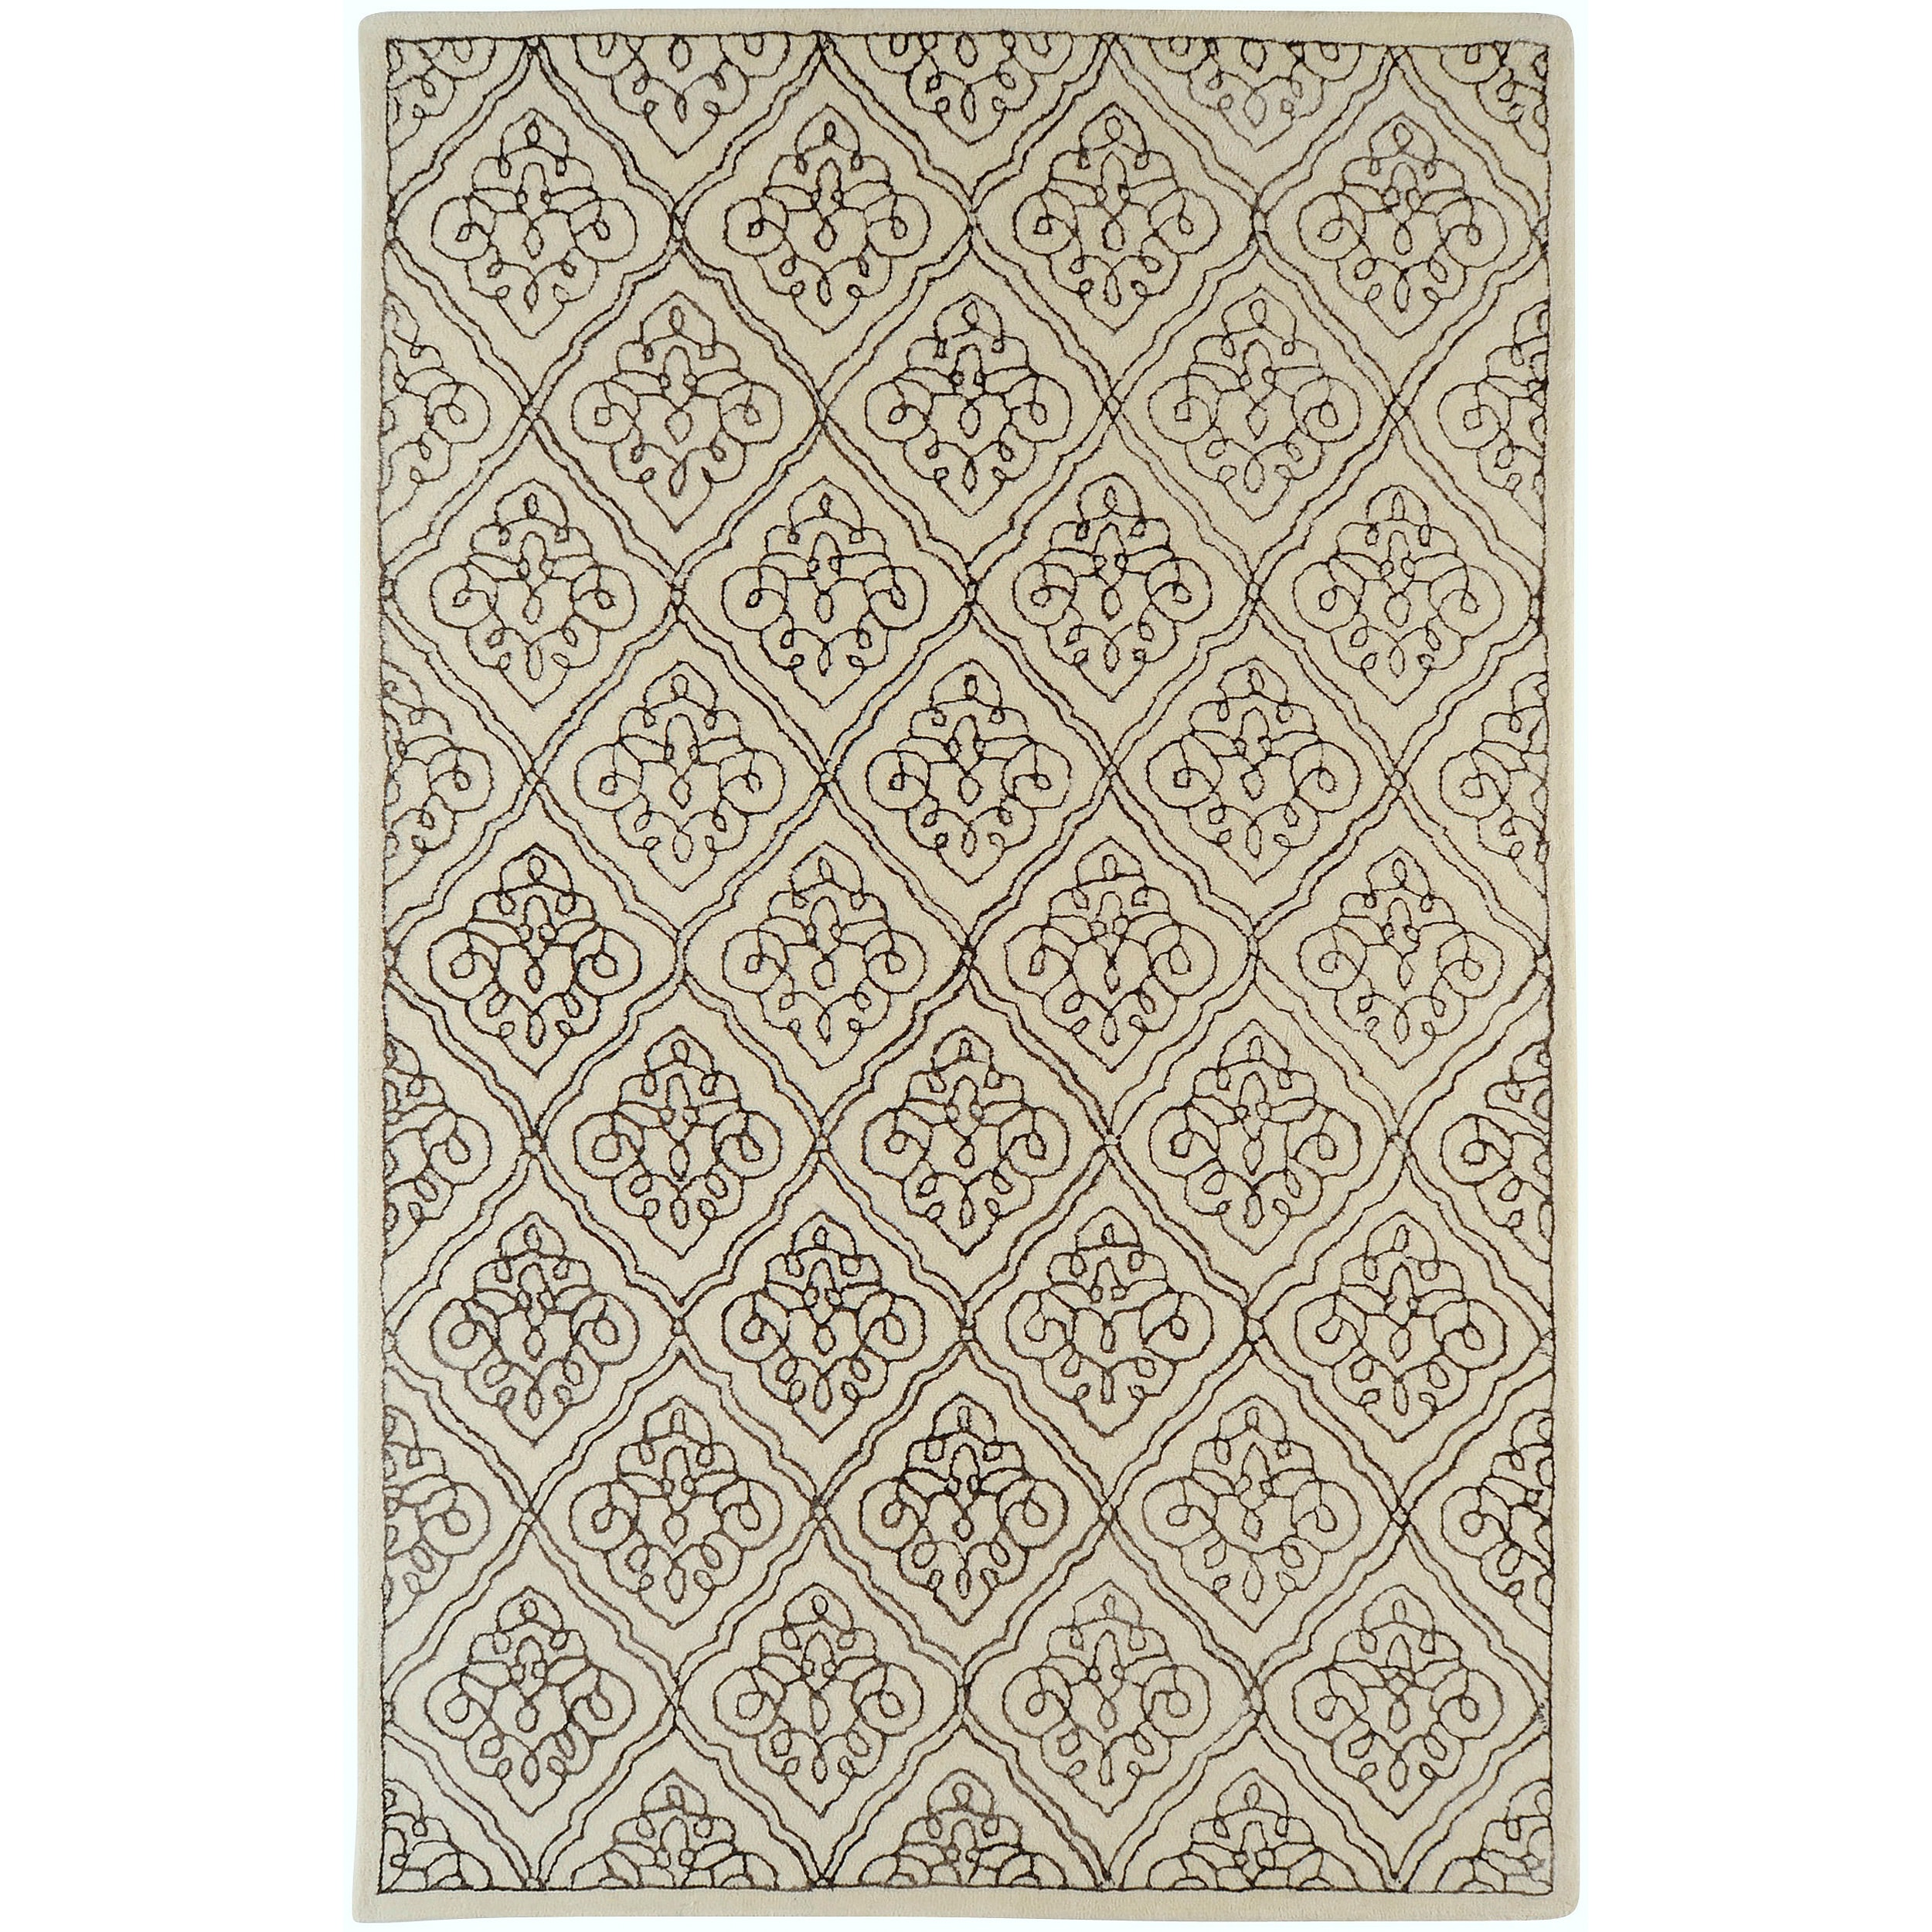 Hand-tufted Troyes Contemporary Geometric Wool Area Rug - 5' x 8'